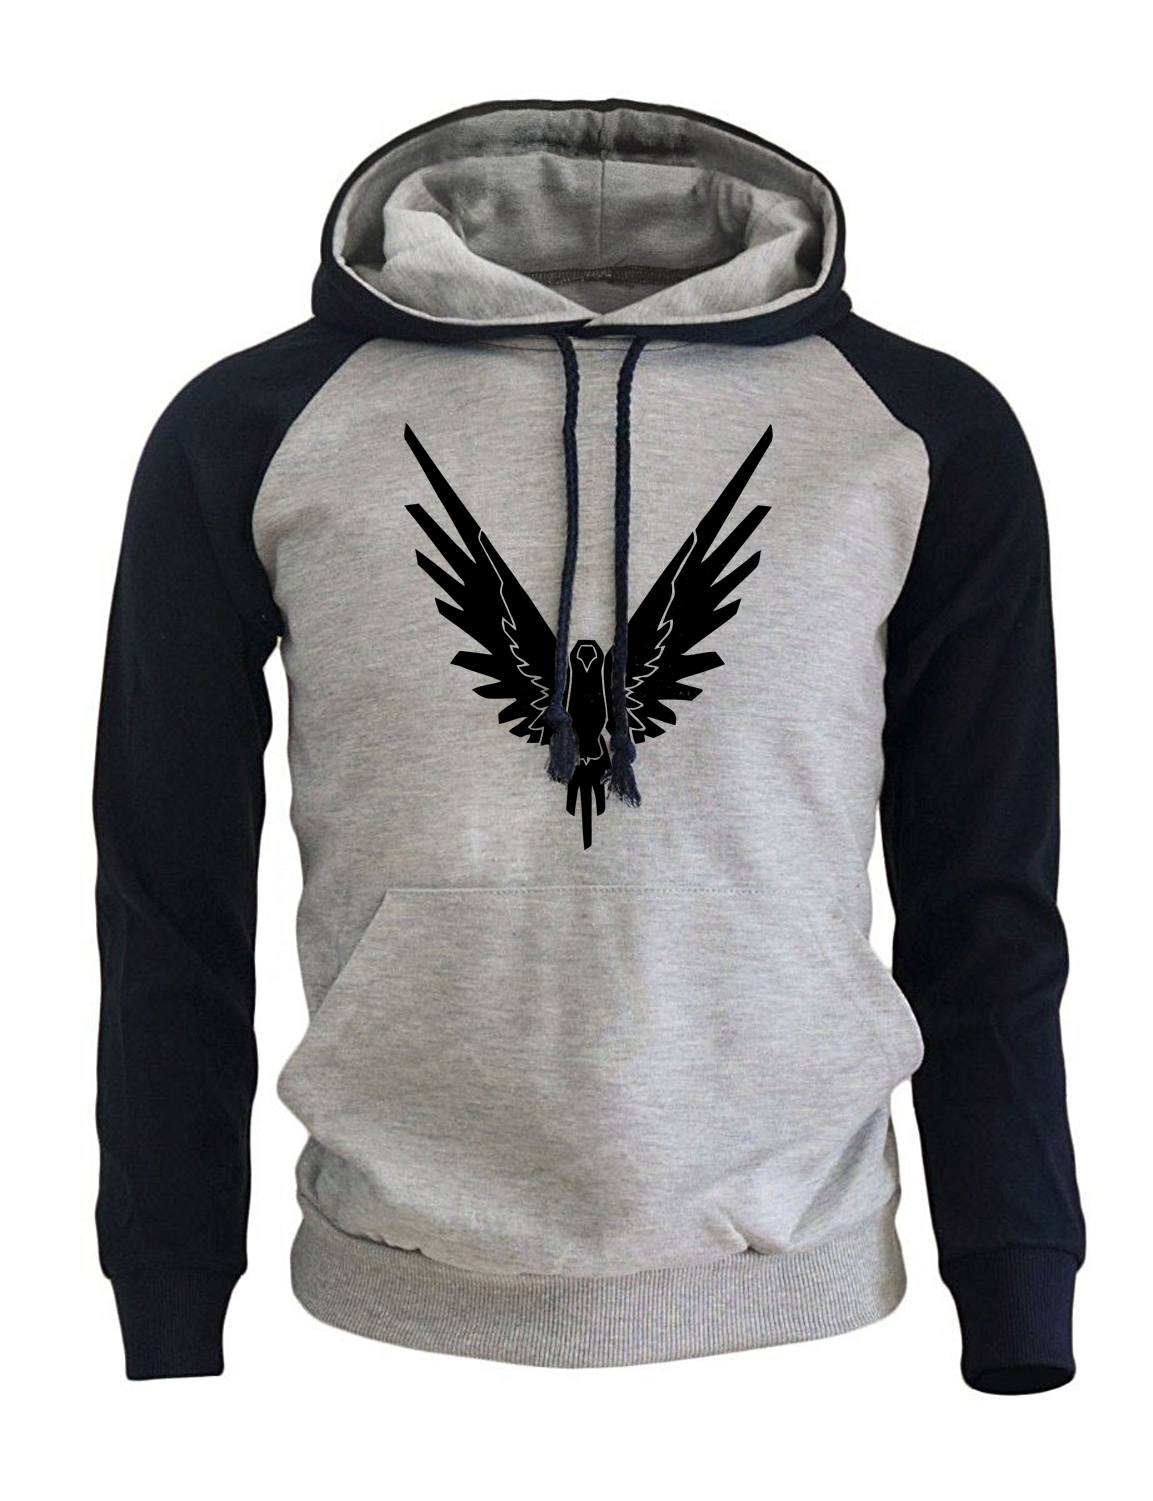 Streetwear Hoodies For Men 2018 Autumn Winter Fleece Raglan Sweatshirt Harajuku Hoodie Brand Mens Sportswear Eagle Hip Hop Hoody